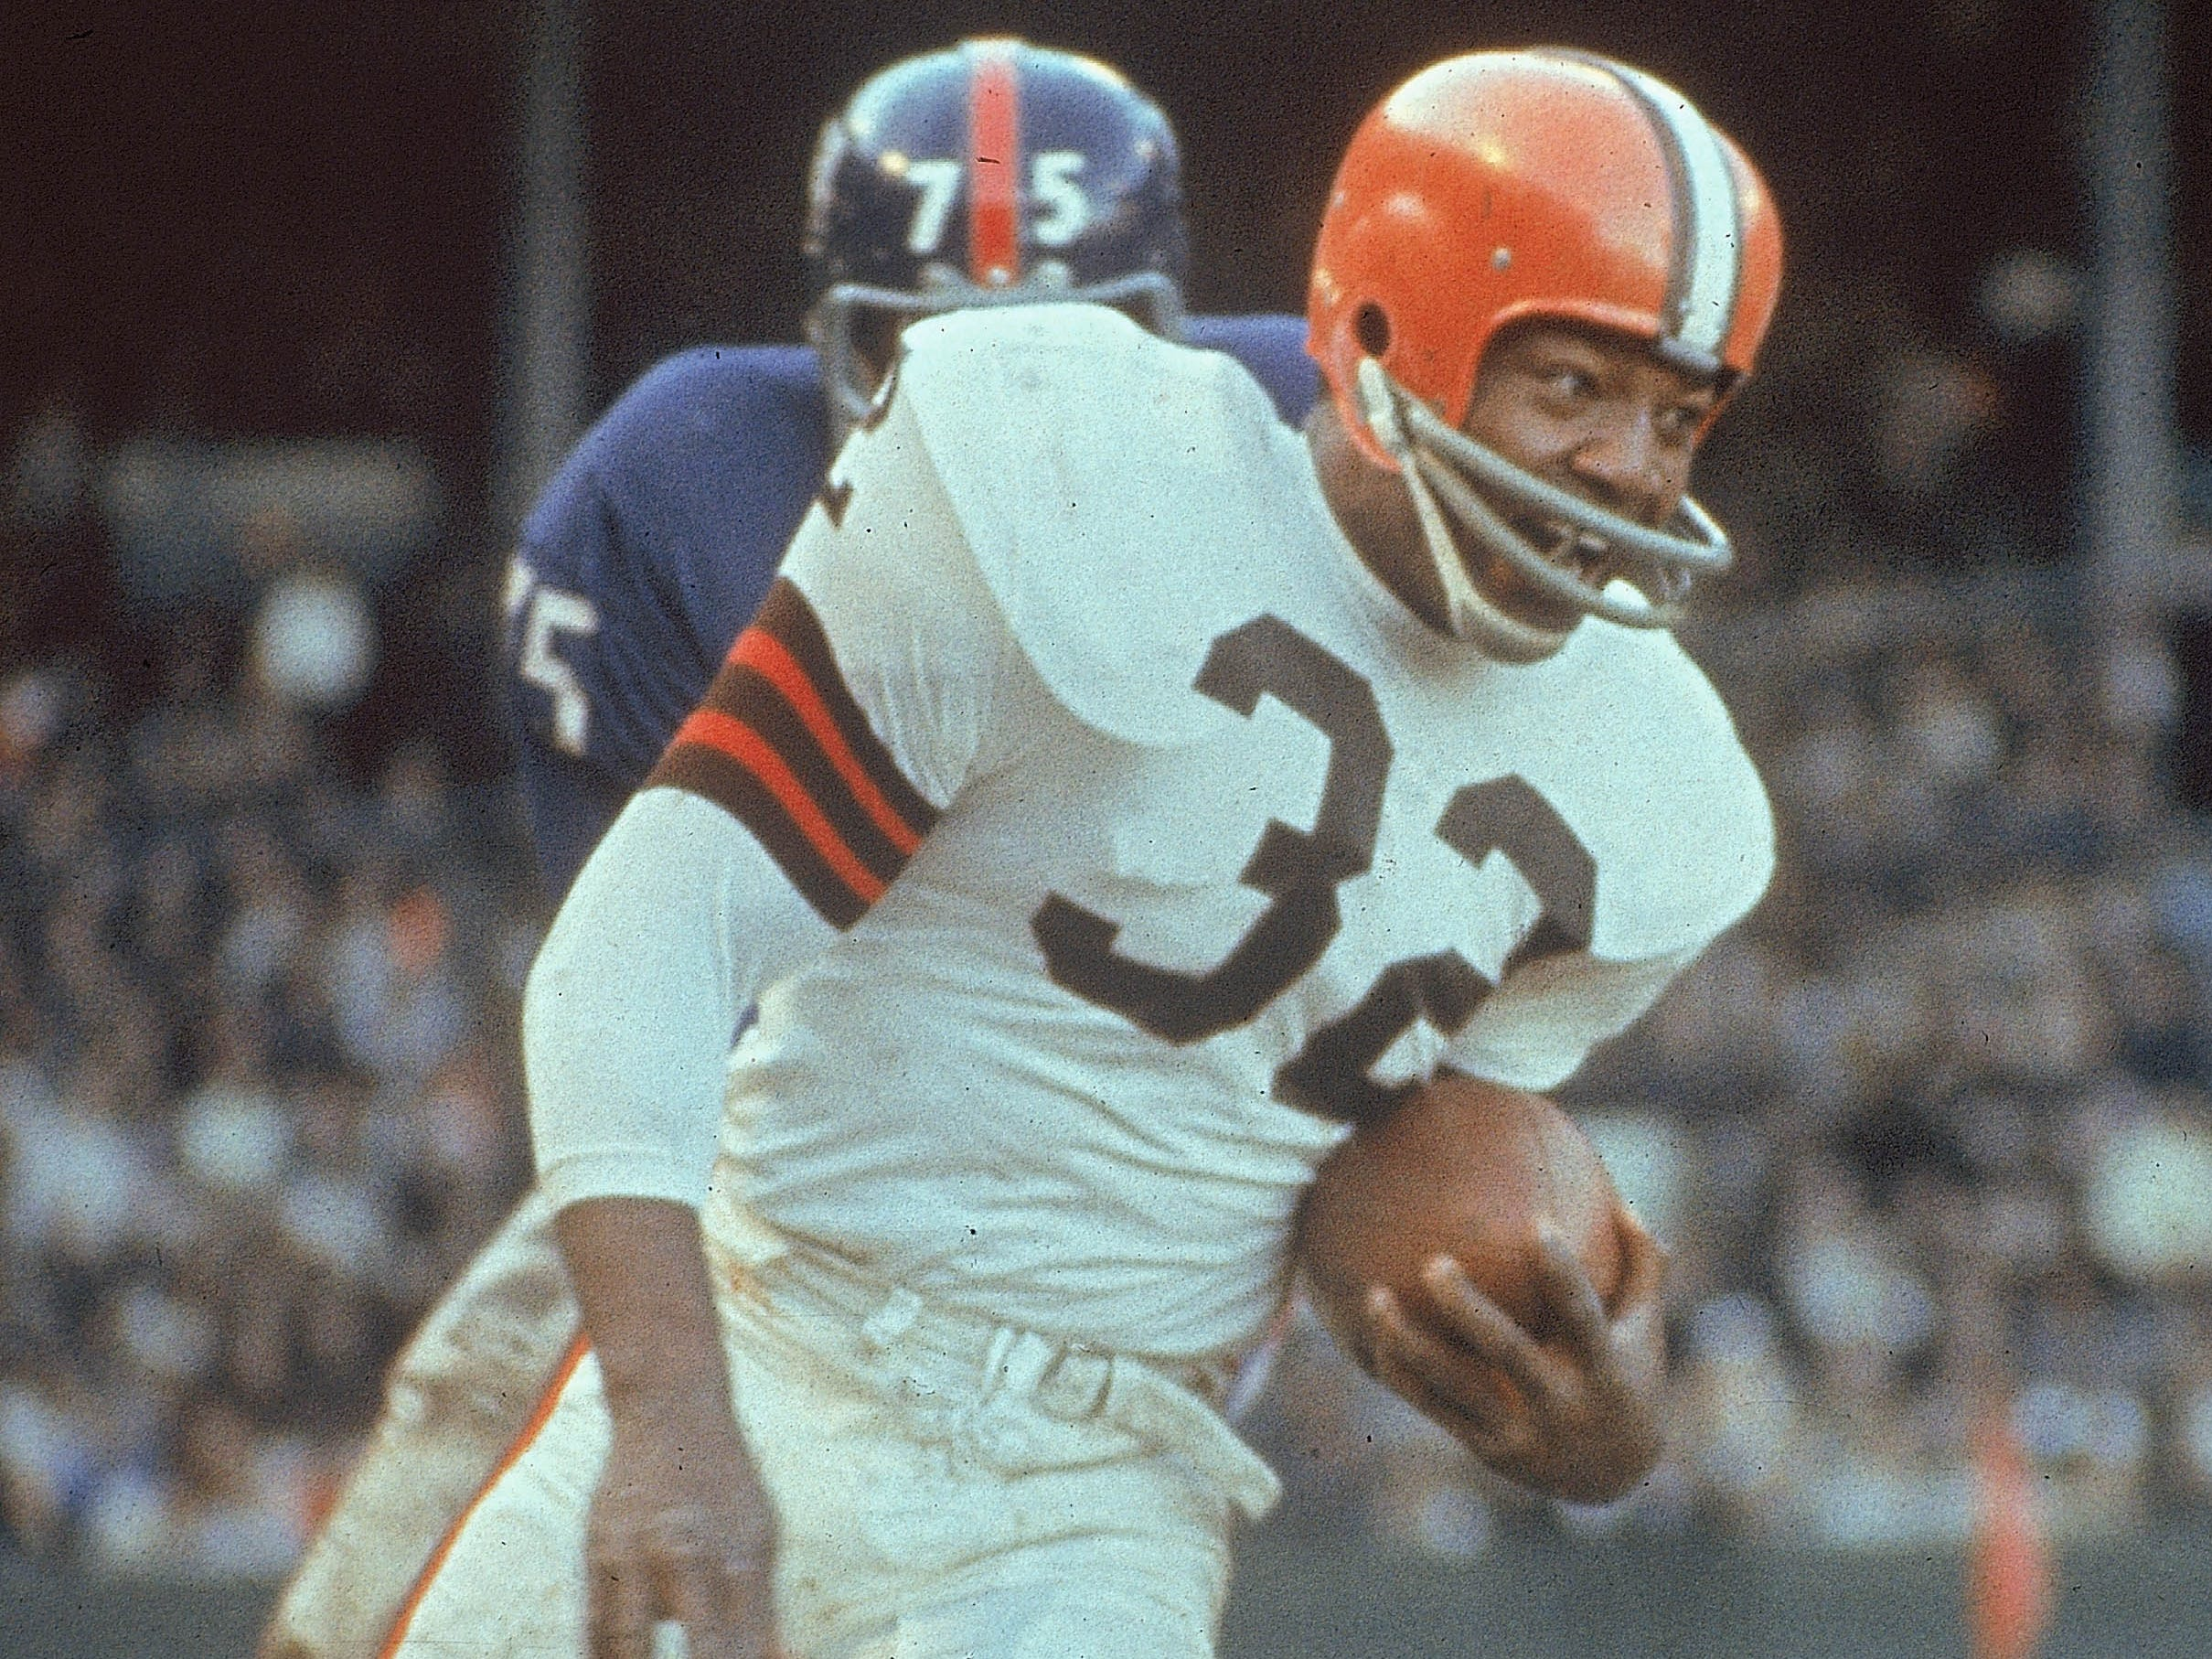 Jim Brown - Arguably the most dominant player in NFL history.